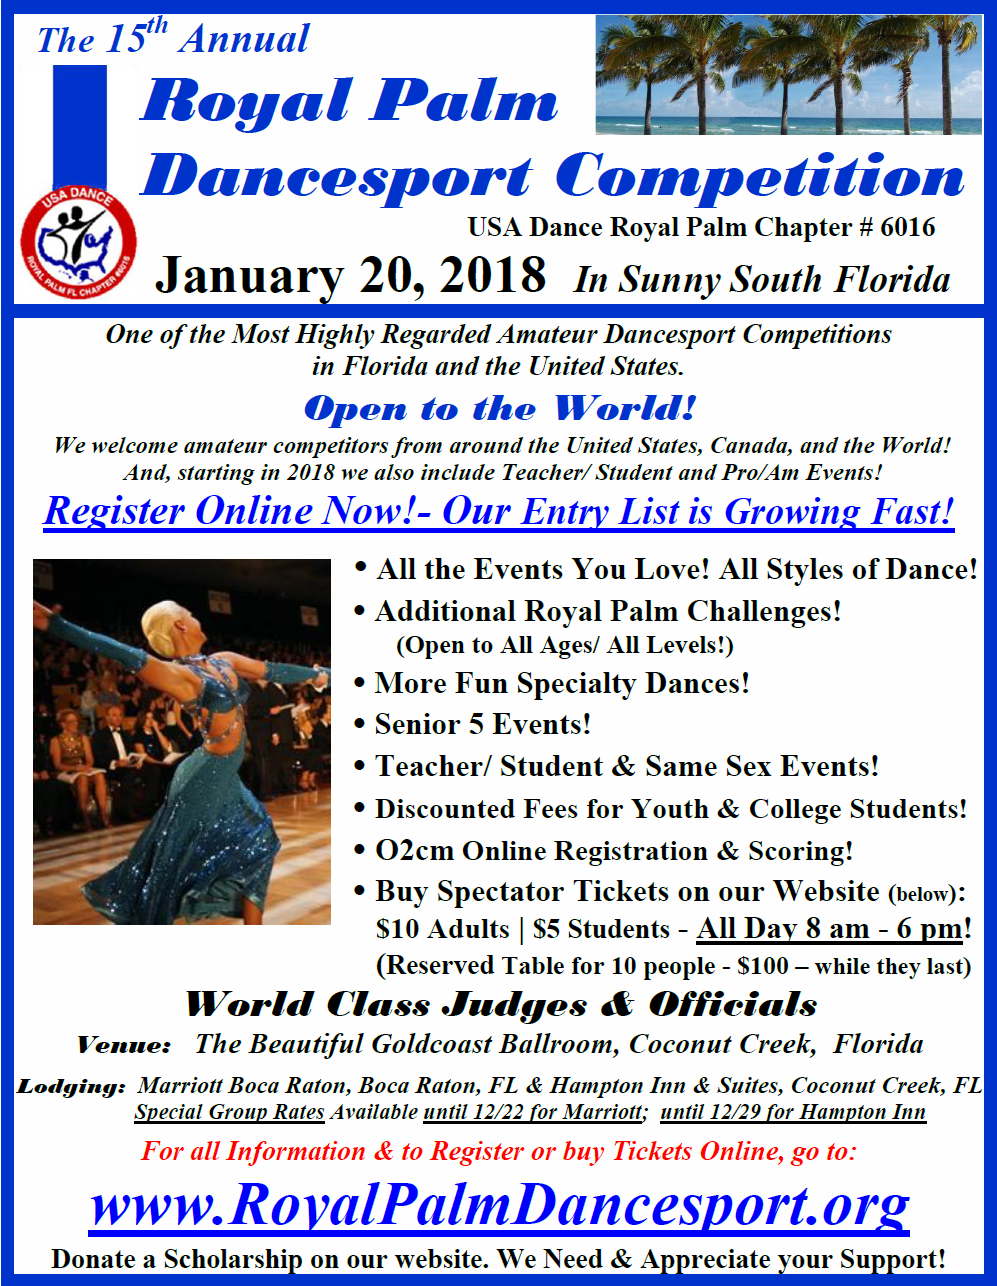 15th Annual Royal Palm Dancesport Competition - January 20, 2018 - All Day January 20, 2018  at Goldcoast Ballroom in Sunny South Florida!